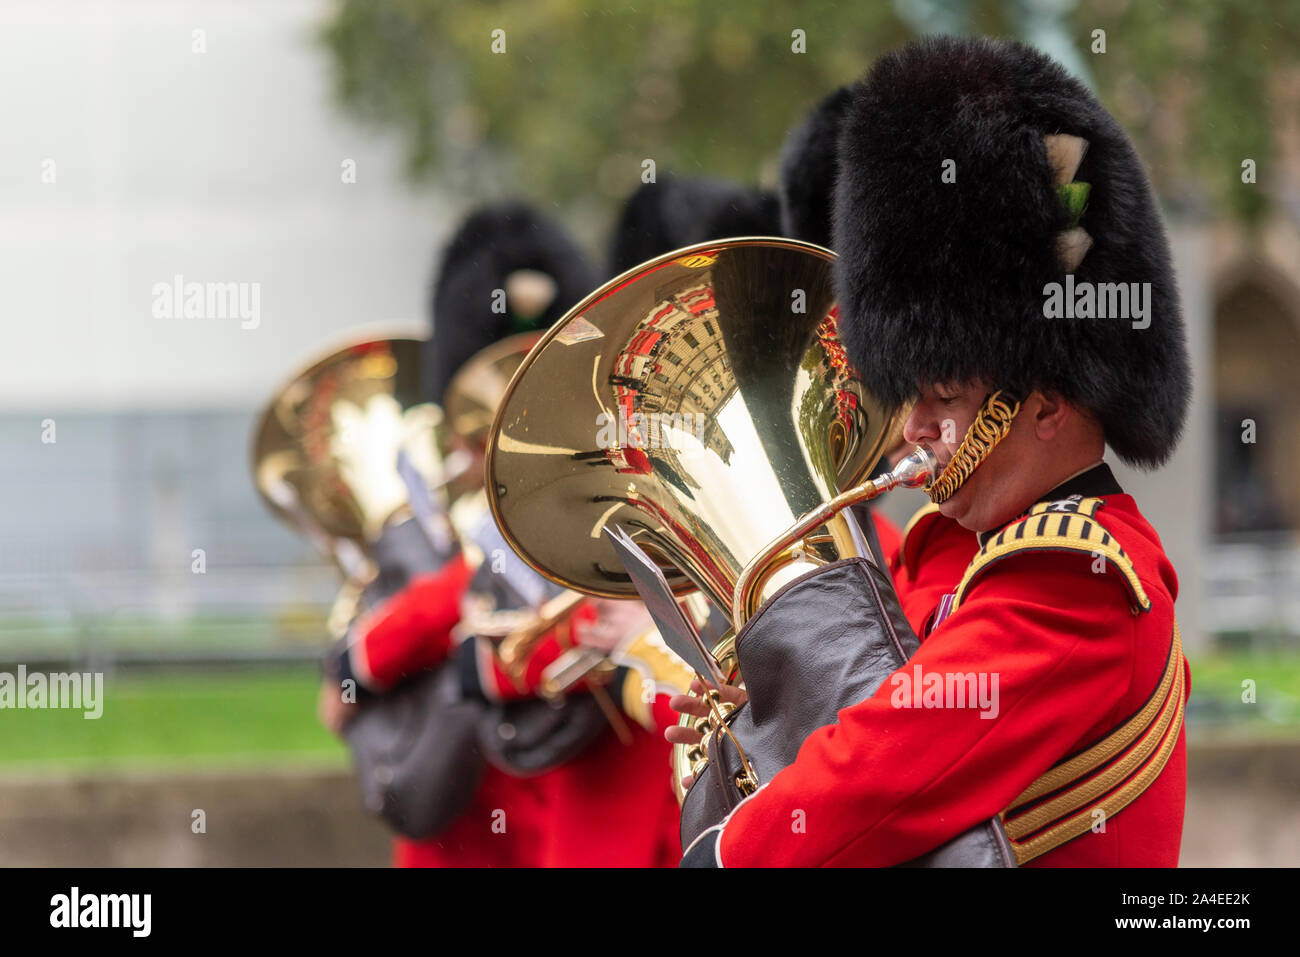 the-royal-procession-of-hm-the-queen-escorted-by-mounted-soldiers-and-marching-bands-from-buckingham-palace-to-parliament-for-the-queen-to-enter-and-to-give-the-queens-speech-marking-the-formal-start-of-the-parliamentary-year-the-event-took-place-in-wet-weather-2A4EE2K.jpg